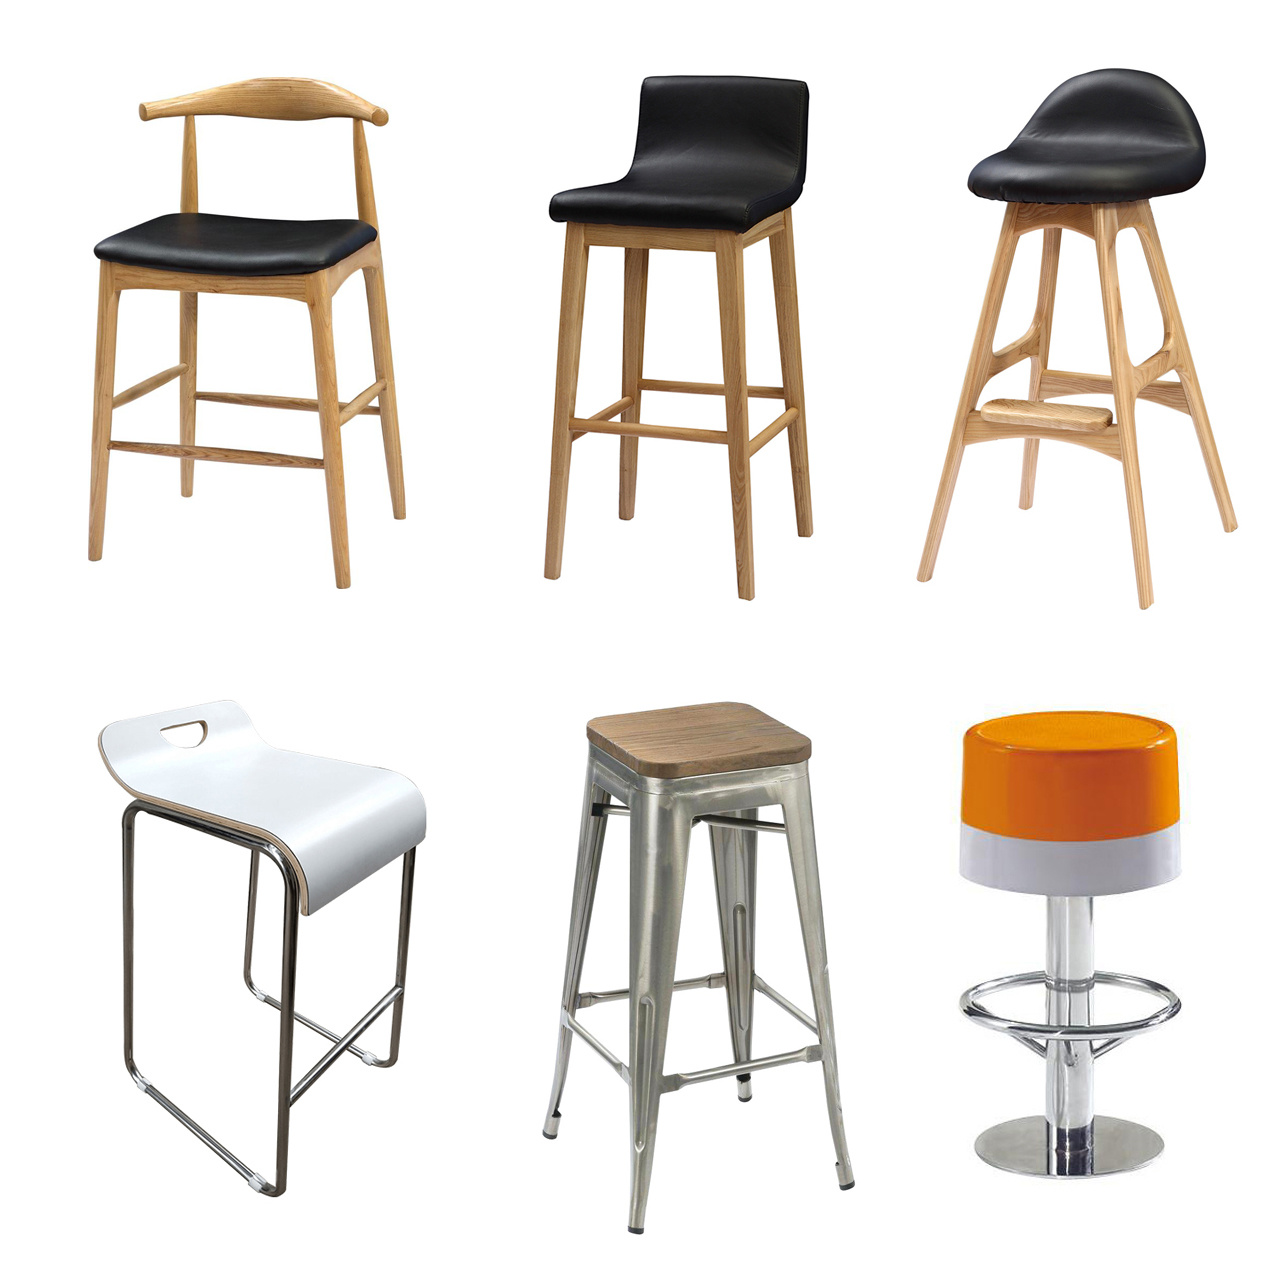 Wood Bar Chairs Hot Item High Stools Chairs Bar Stools Chair For Wooden Bar Table